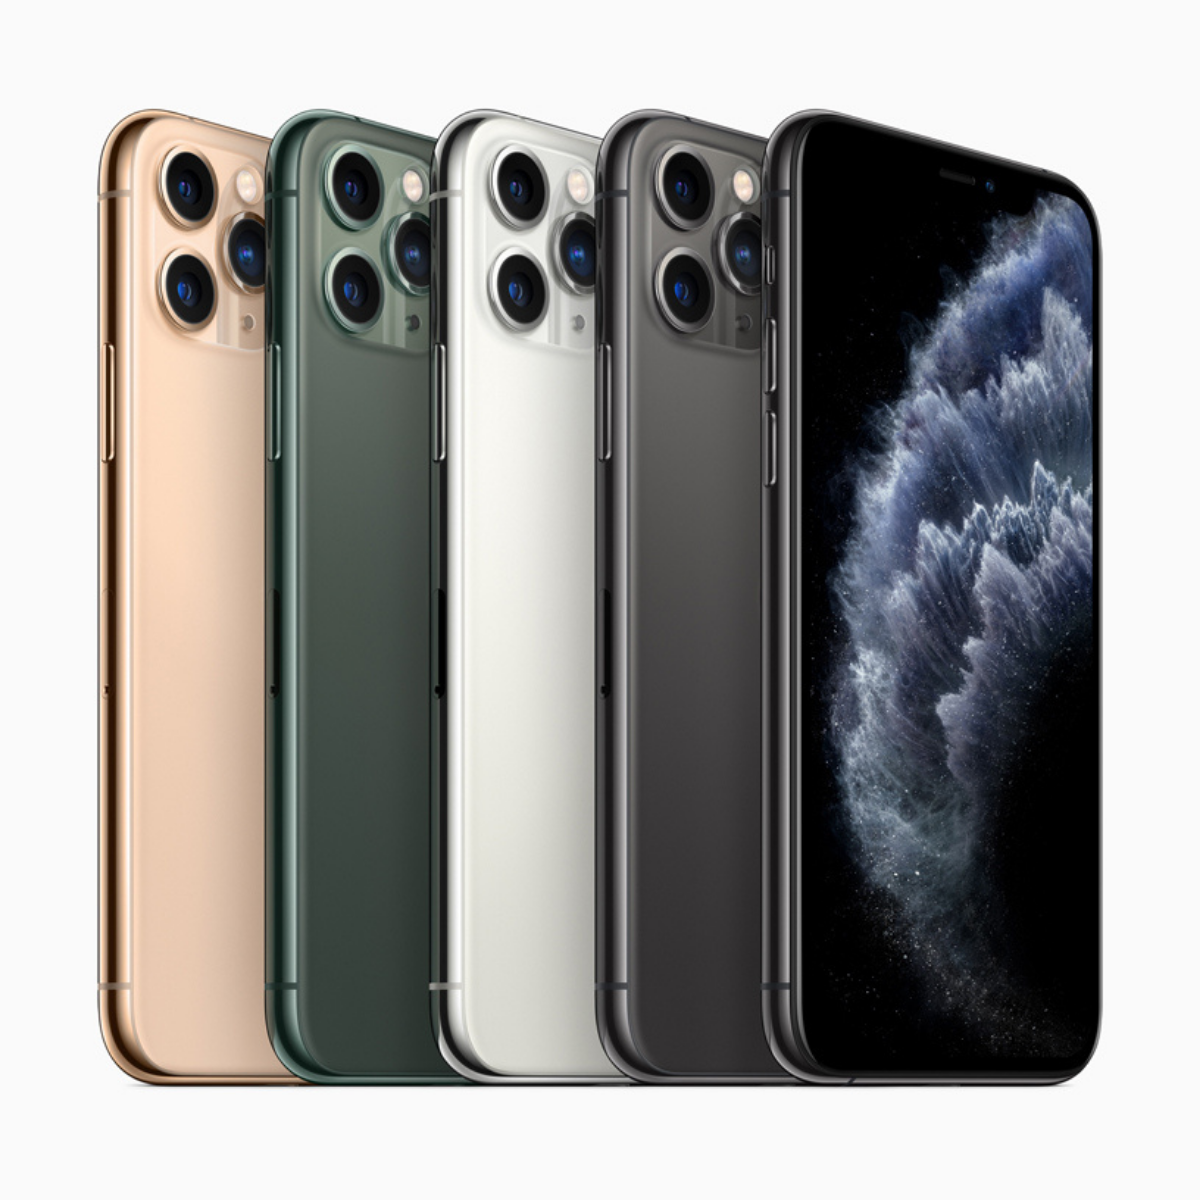 Sim Free iPhone 11 Pro 64GB Unlocked Mobile Phone - All Colours